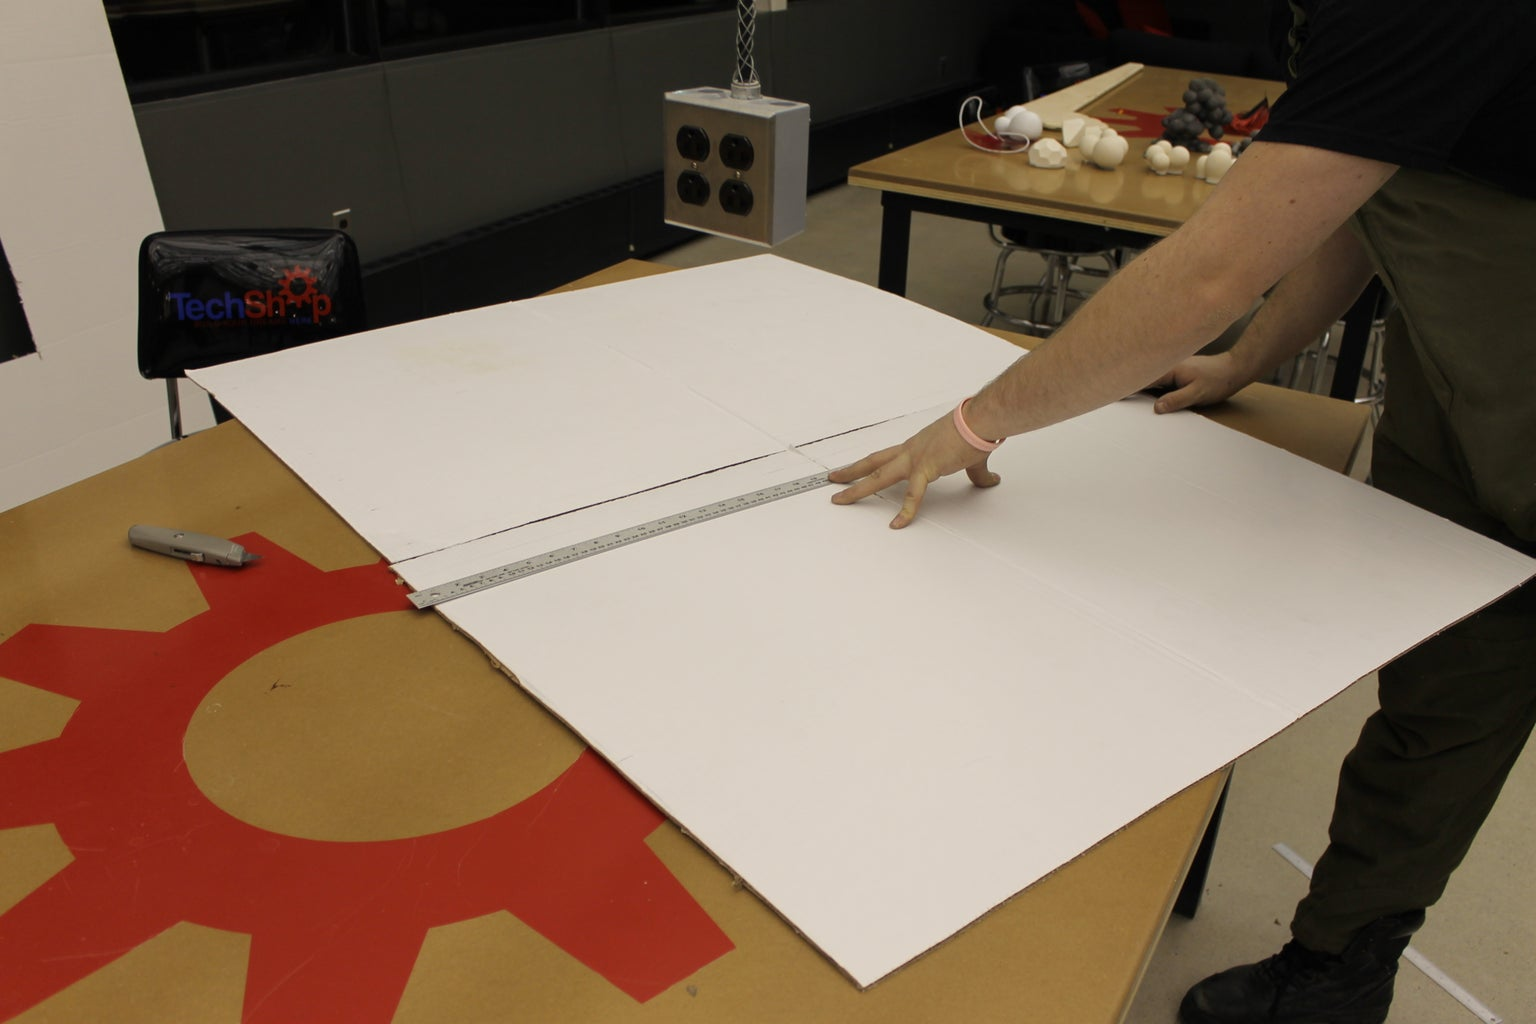 Cutting and Marking the Board